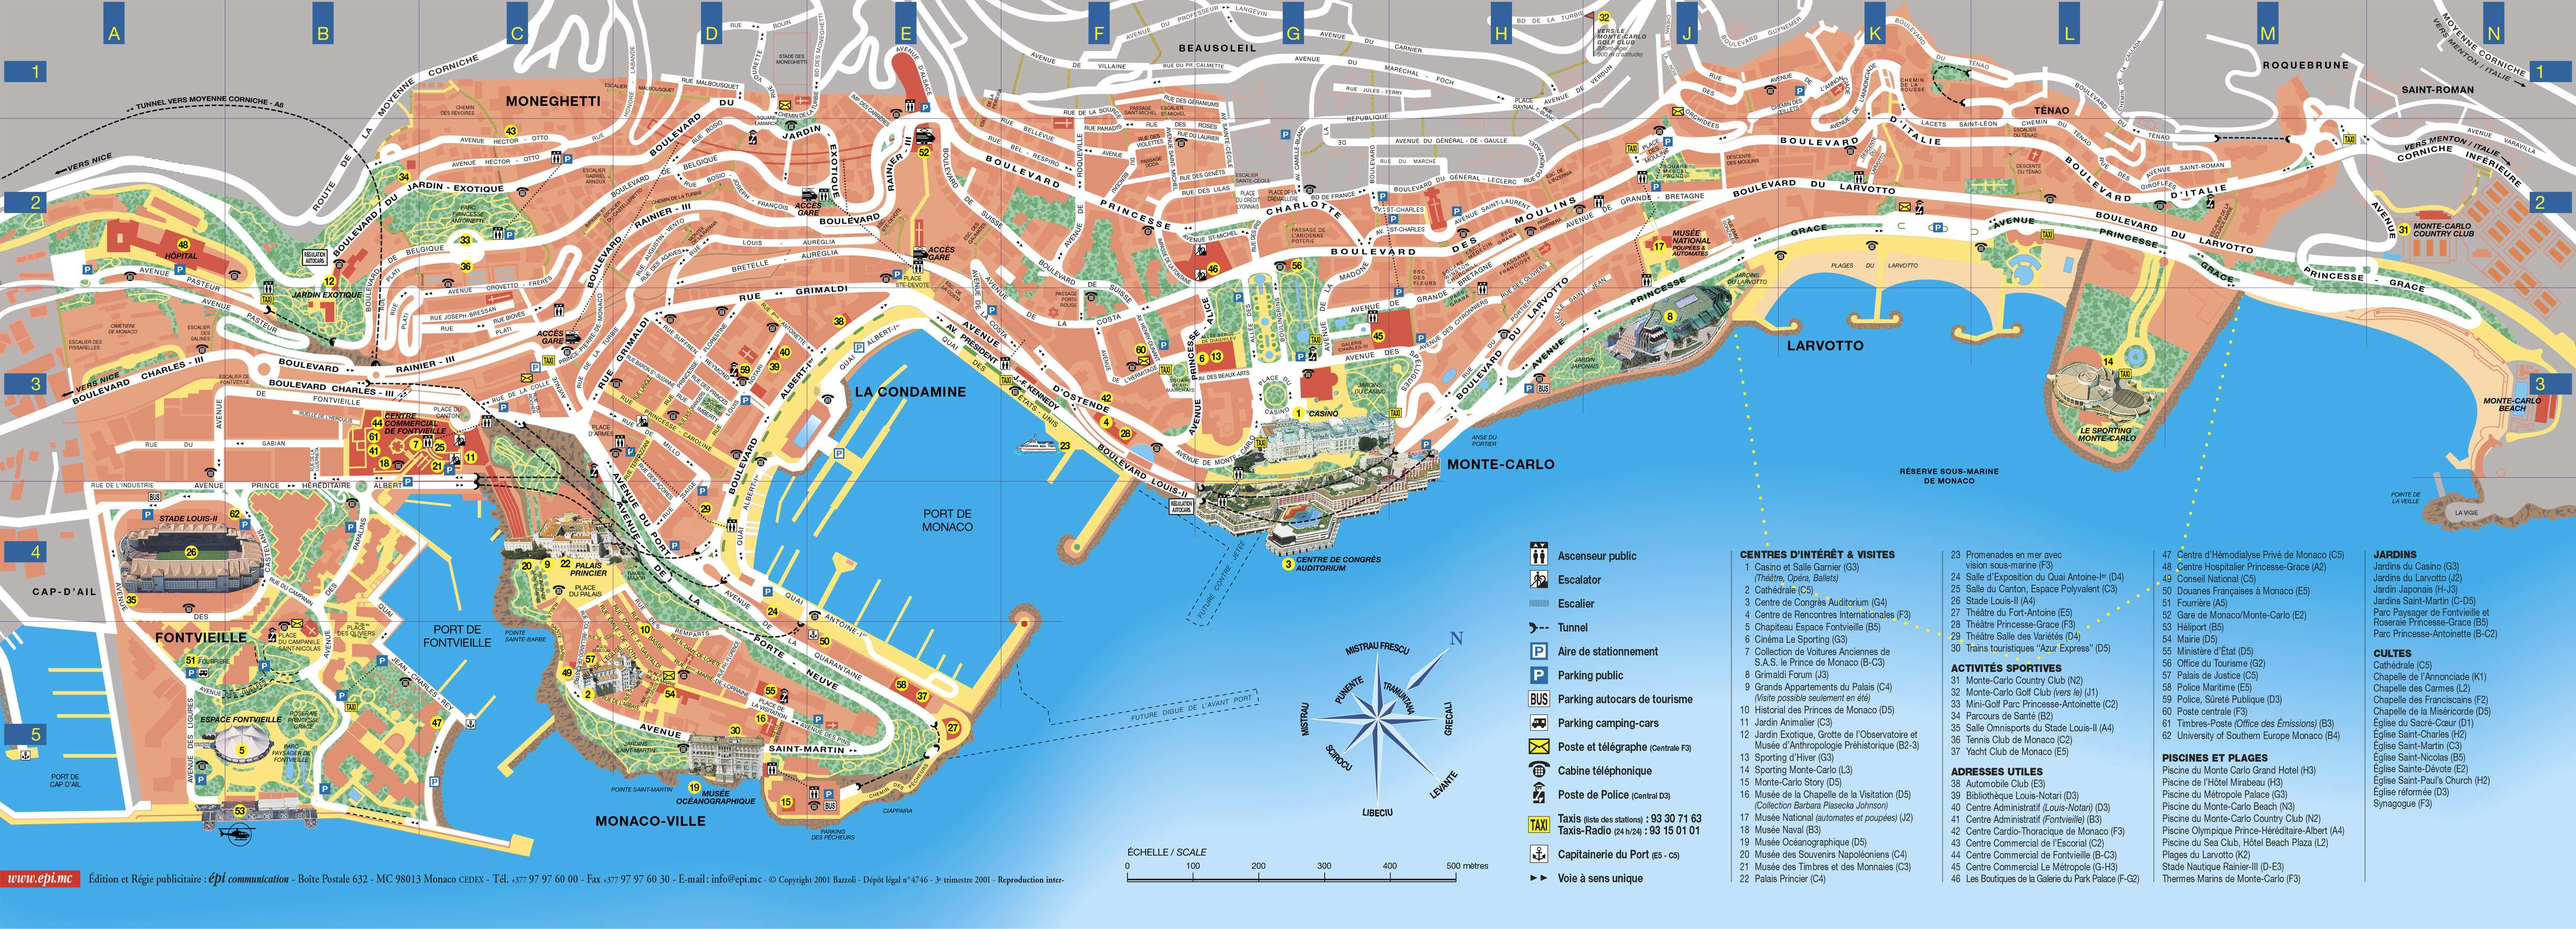 Map Monte Carlo Monaco Large Monte Carlo Maps for Free Download and Print | High